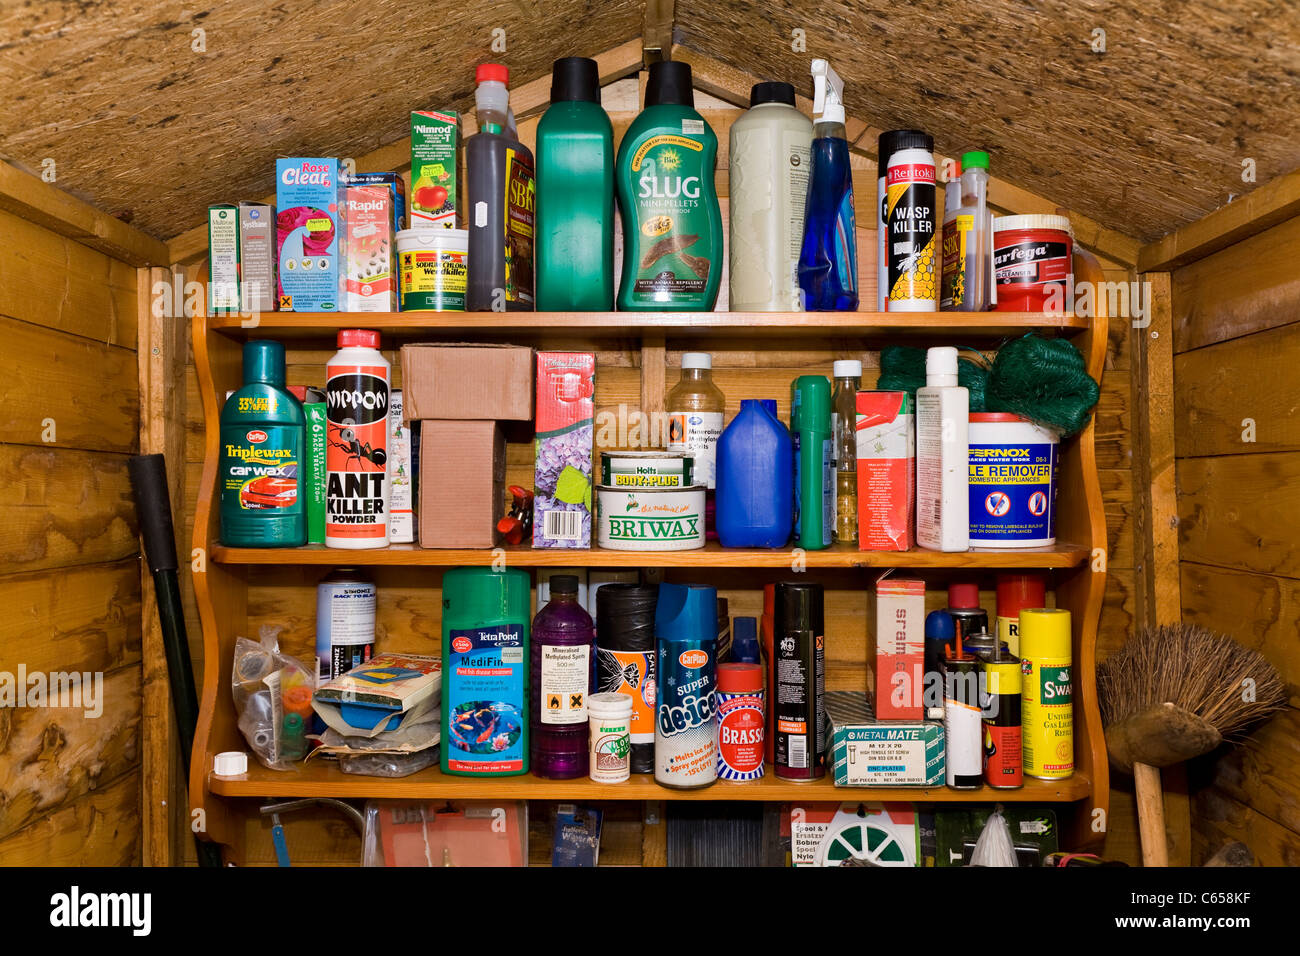 Shelf / Shelves Holding Large Range / Variety Of Garden / Gardening  Chemicals, Tins U0026 Household Products In A Garden Shed.